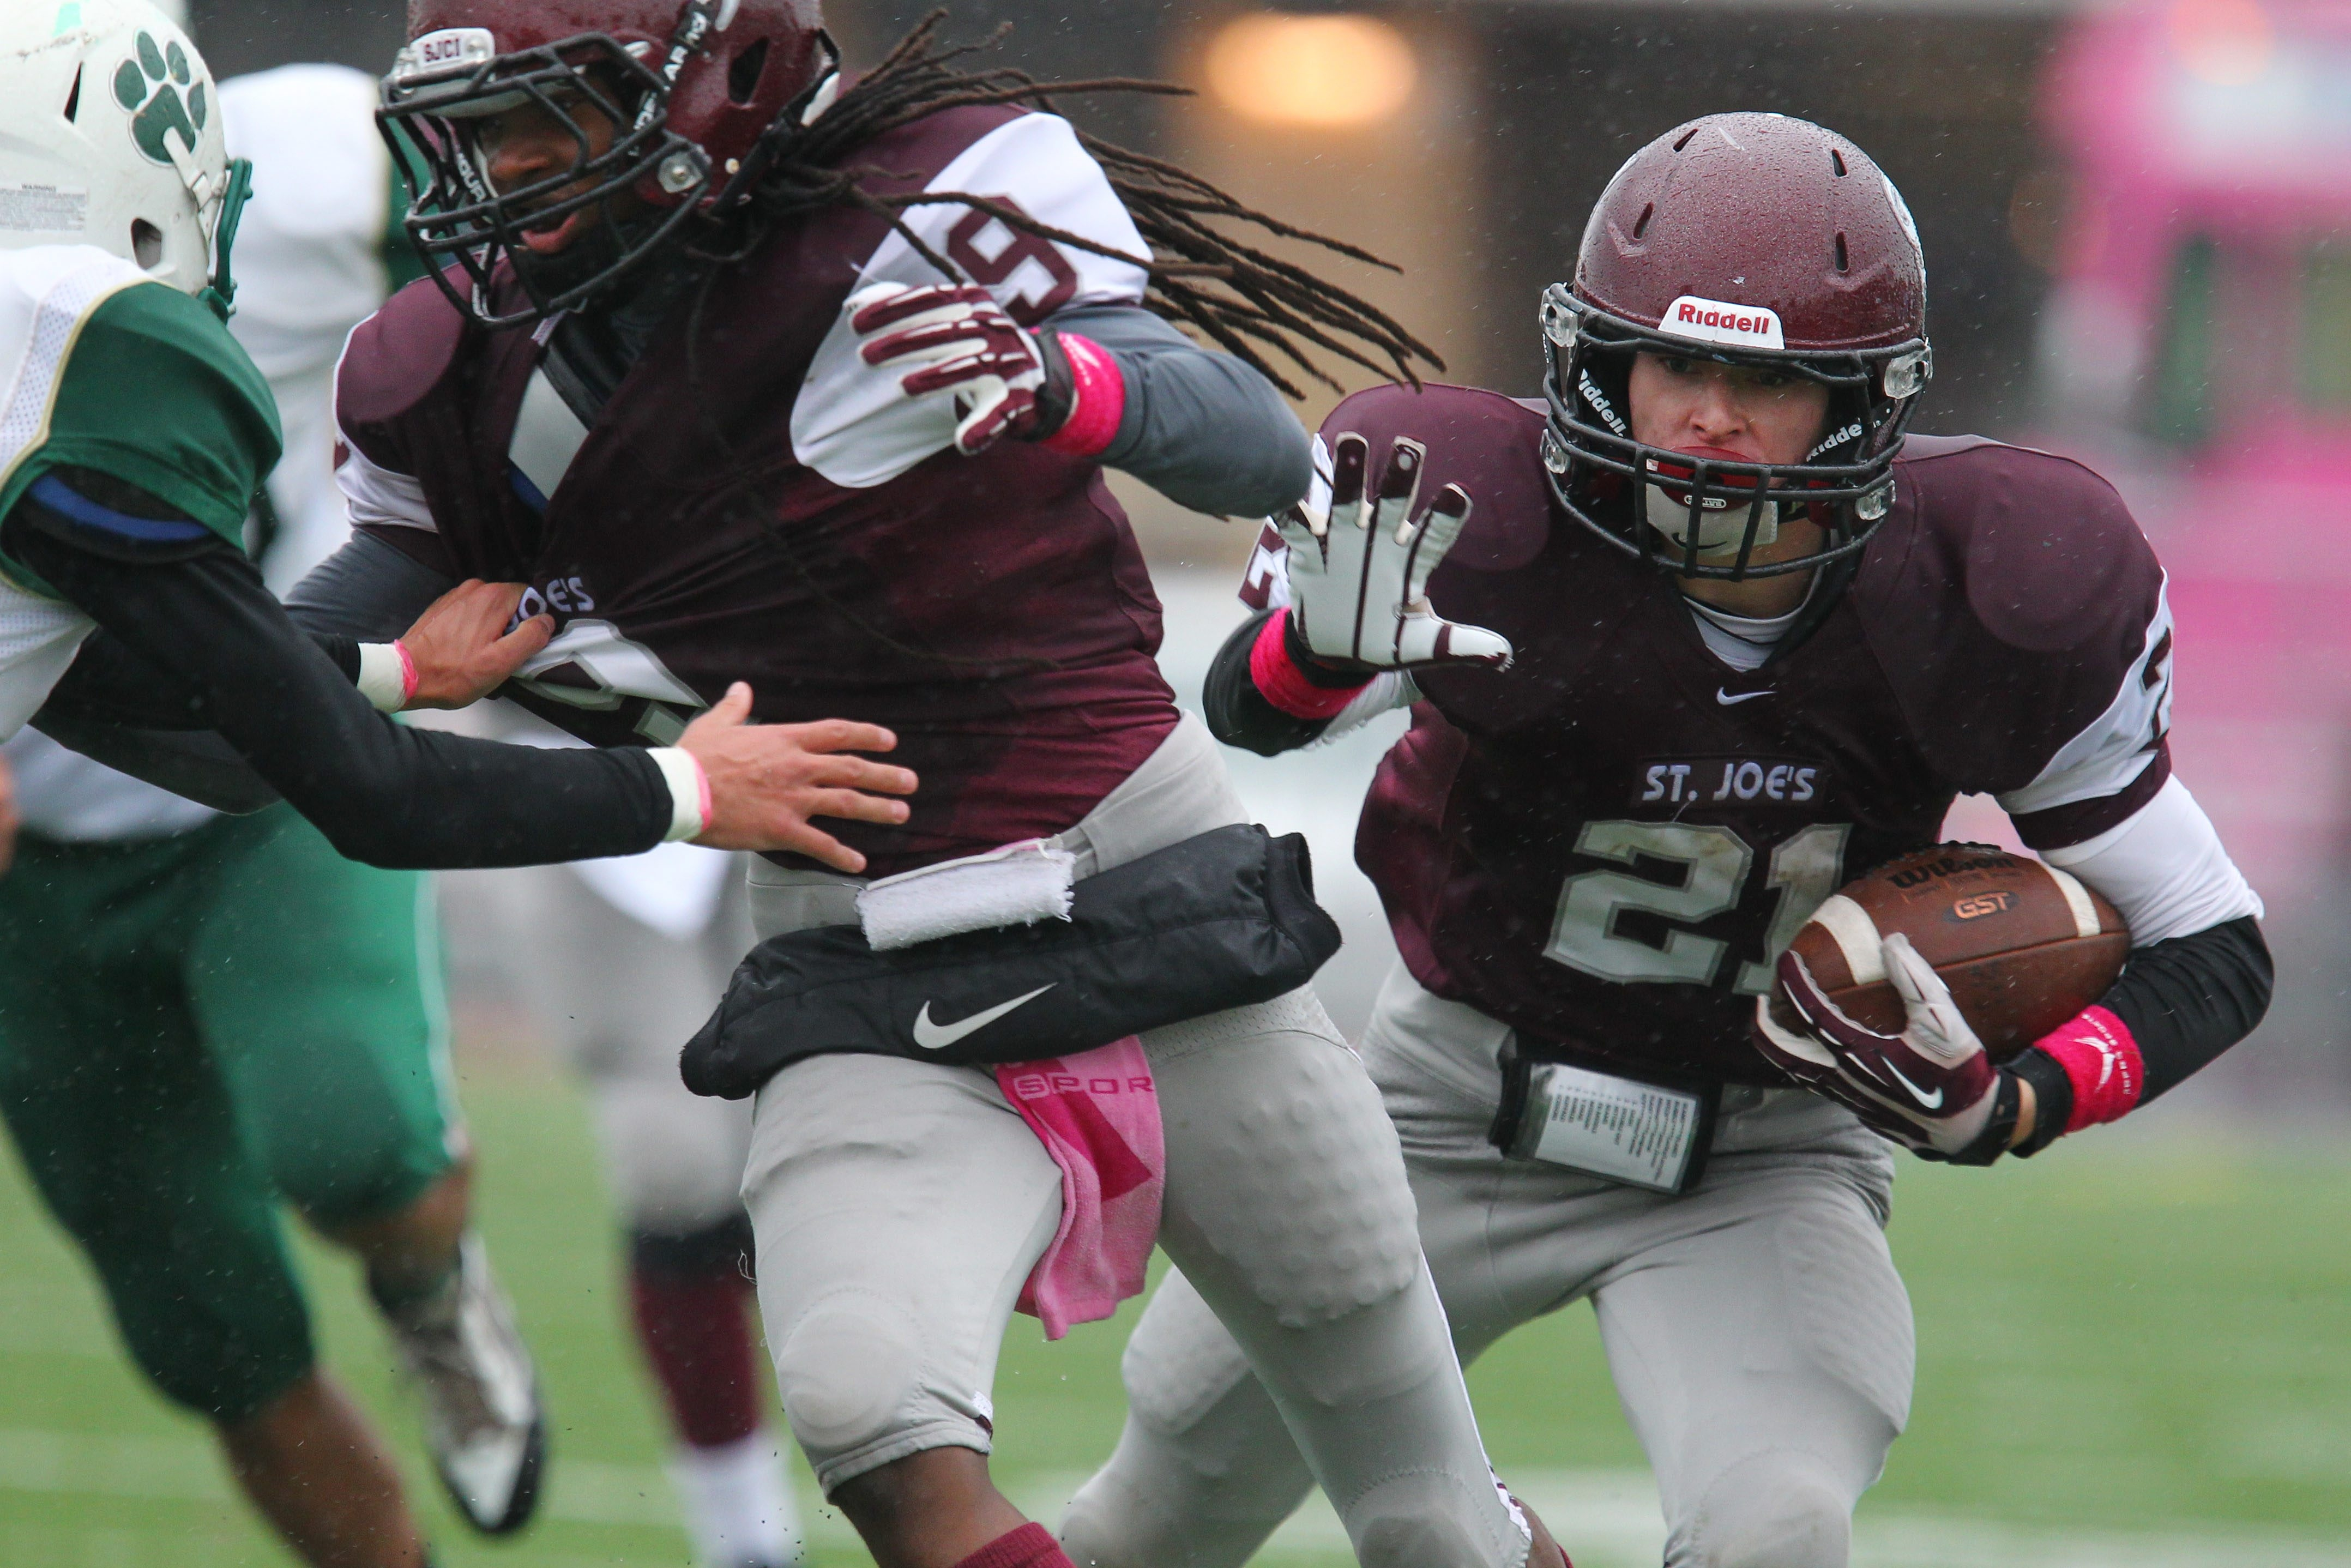 Ryan Conschafter (21) gets a block from St. Joe's teammate Alimayu Akono during the Marauders' 15-6 victory over visiting Bishop Timon-St. Jude. St. Joe's plays at rival Canisius next week.